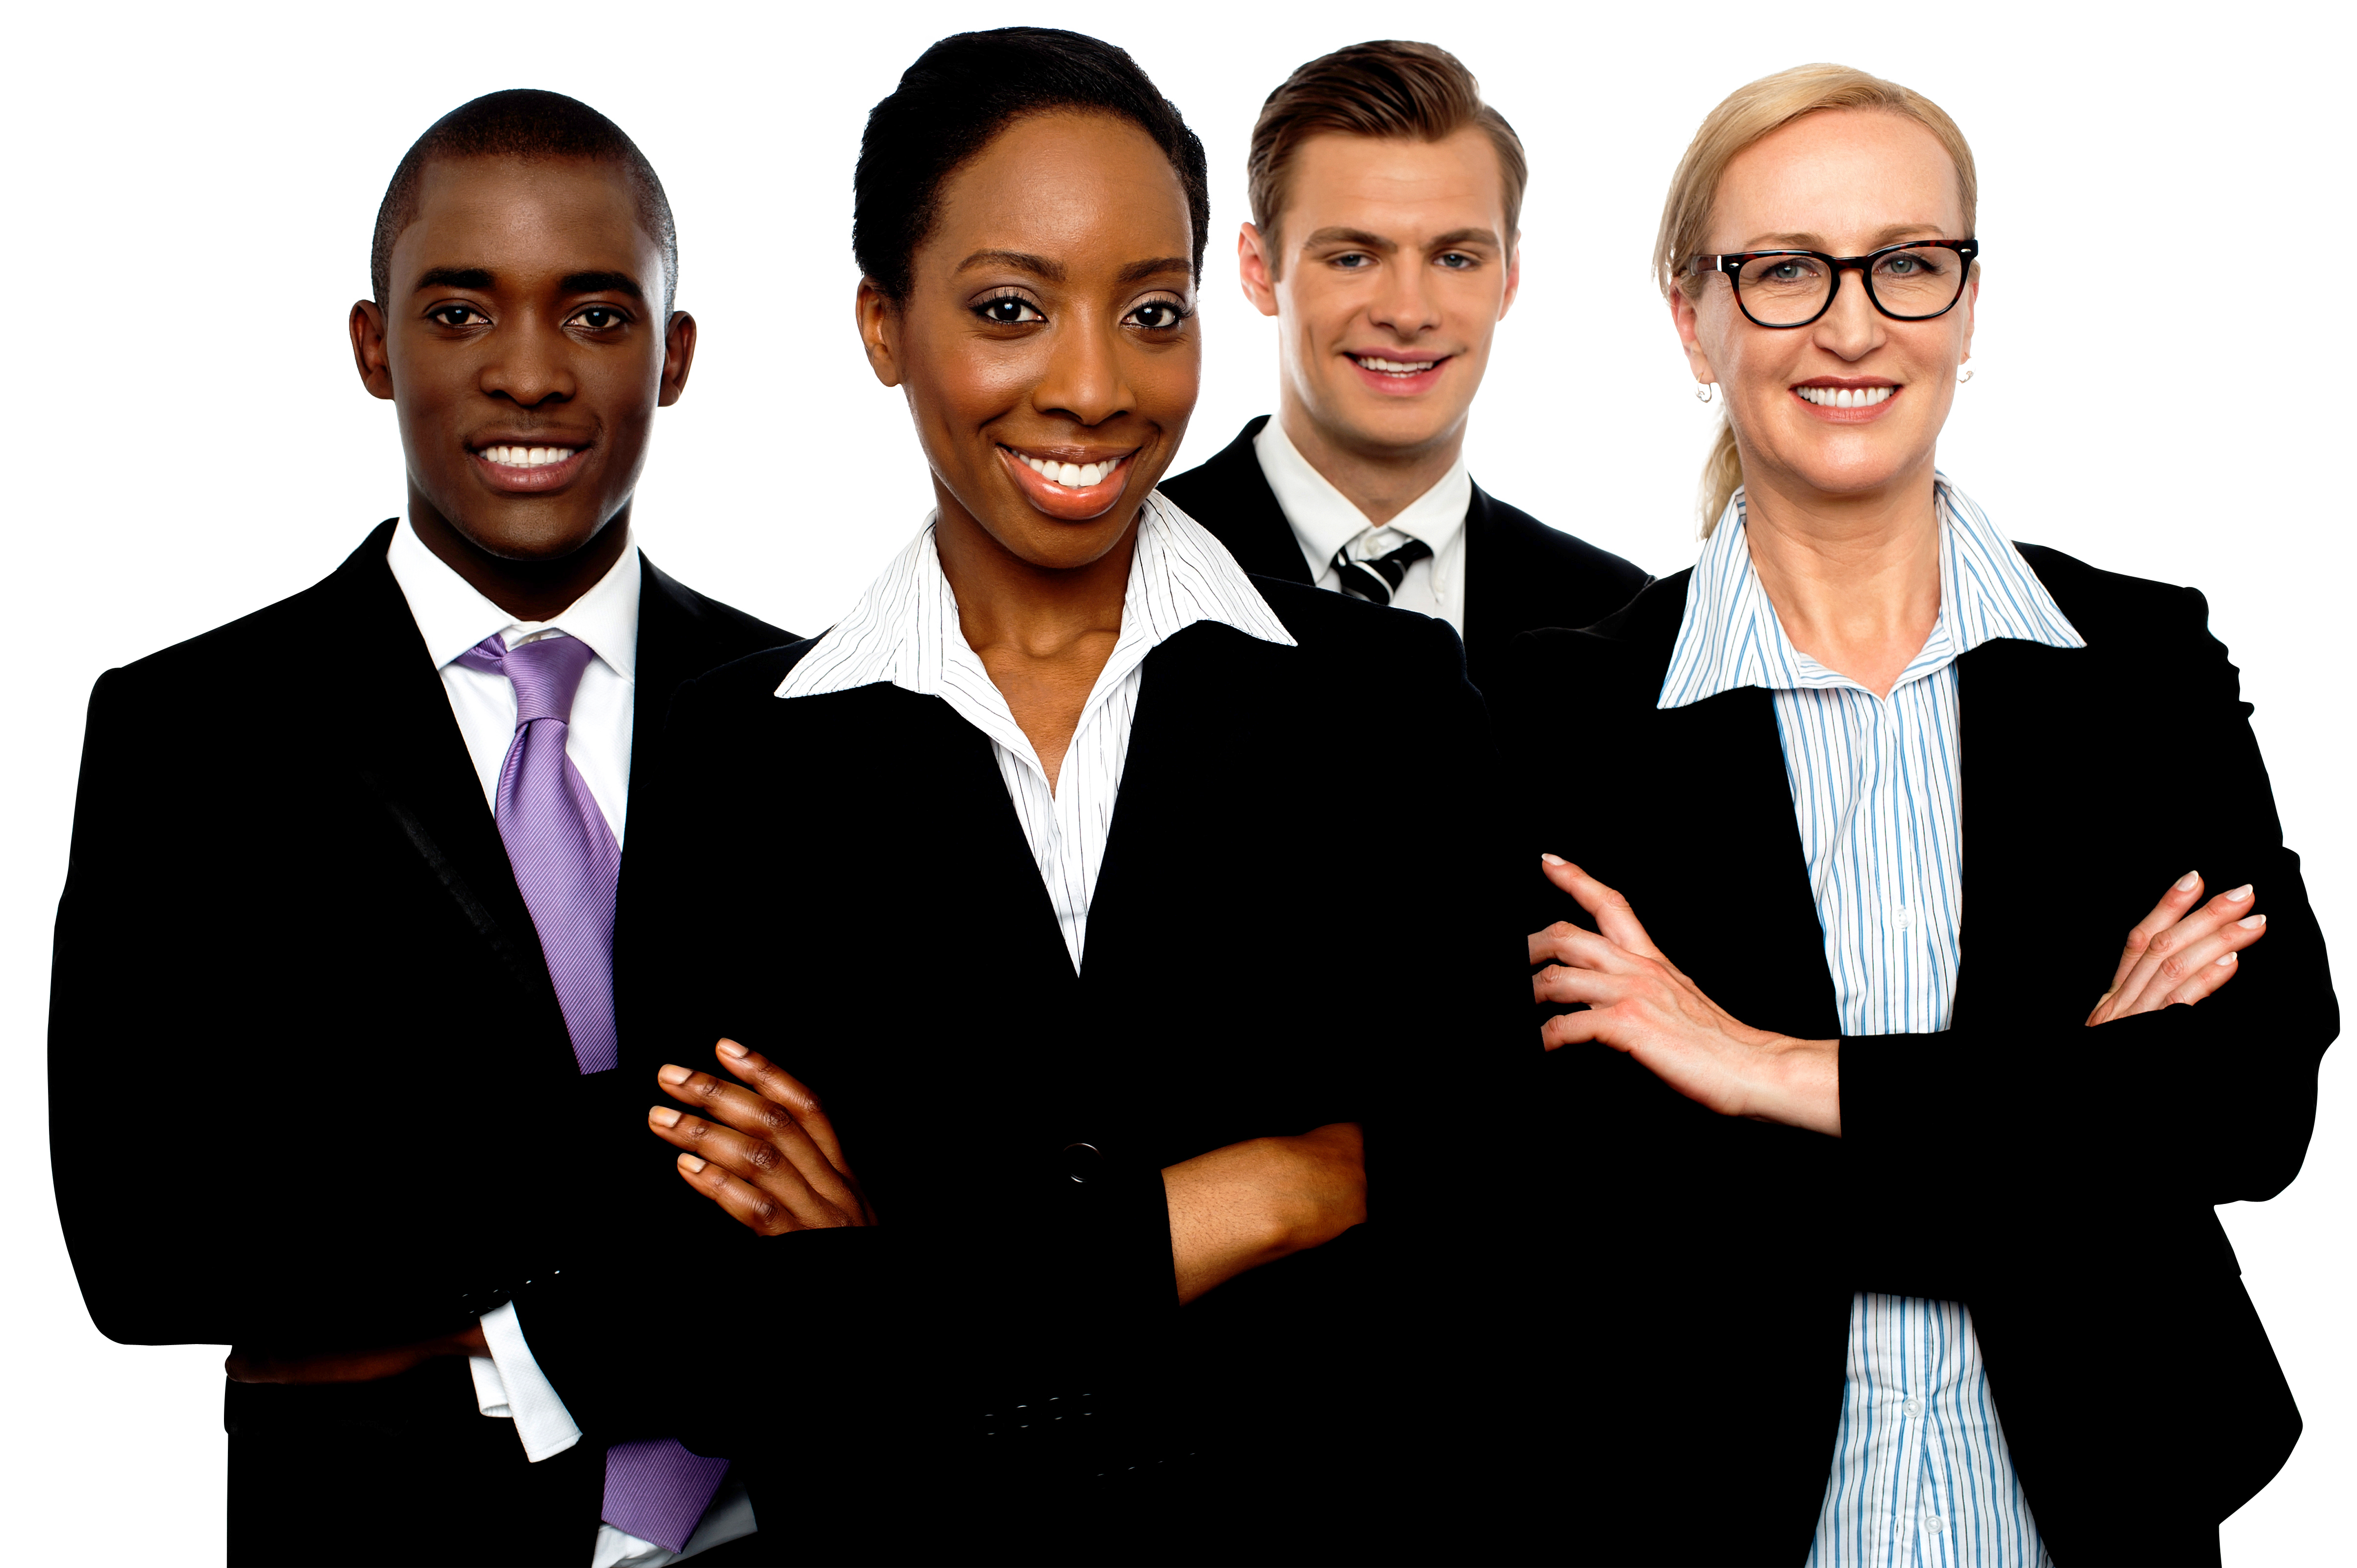 PNG For Business Use - 162297